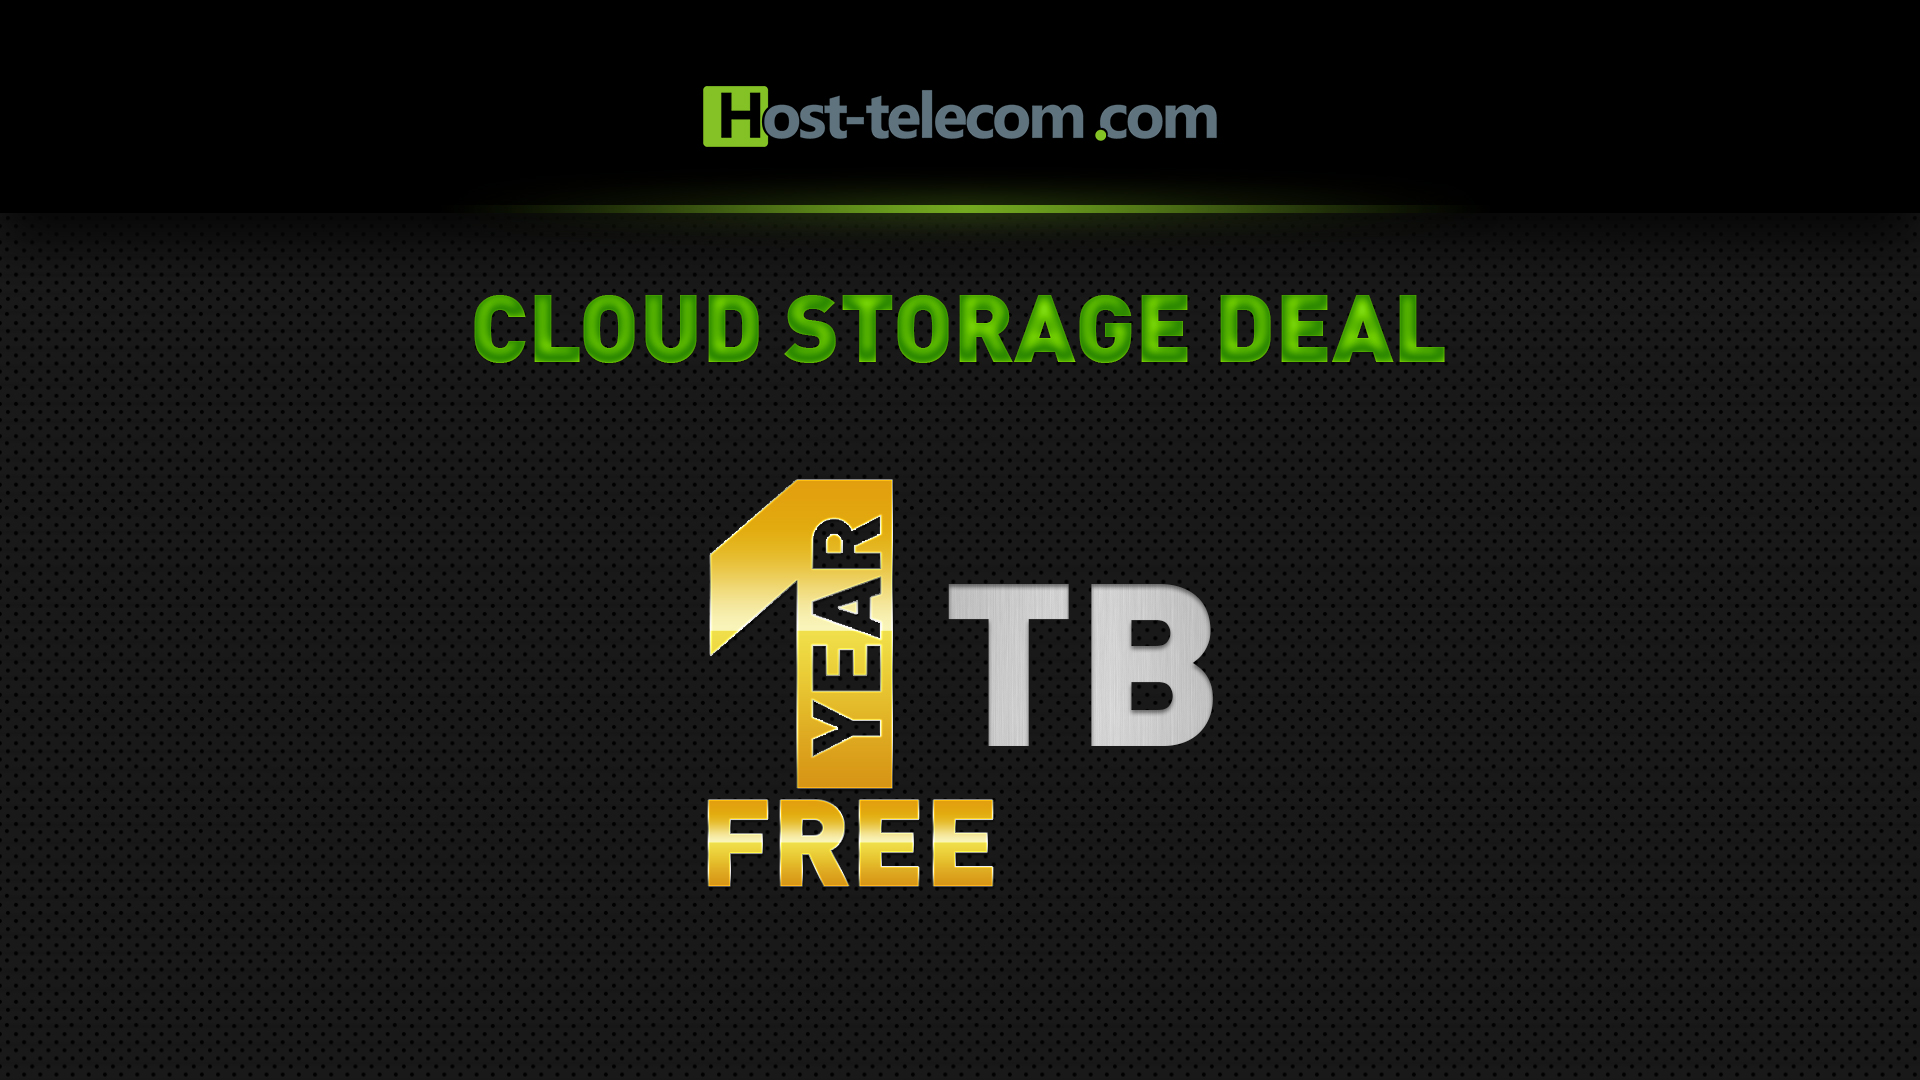 Free storage for any dedicated server or VPS order! | Host-telecom com